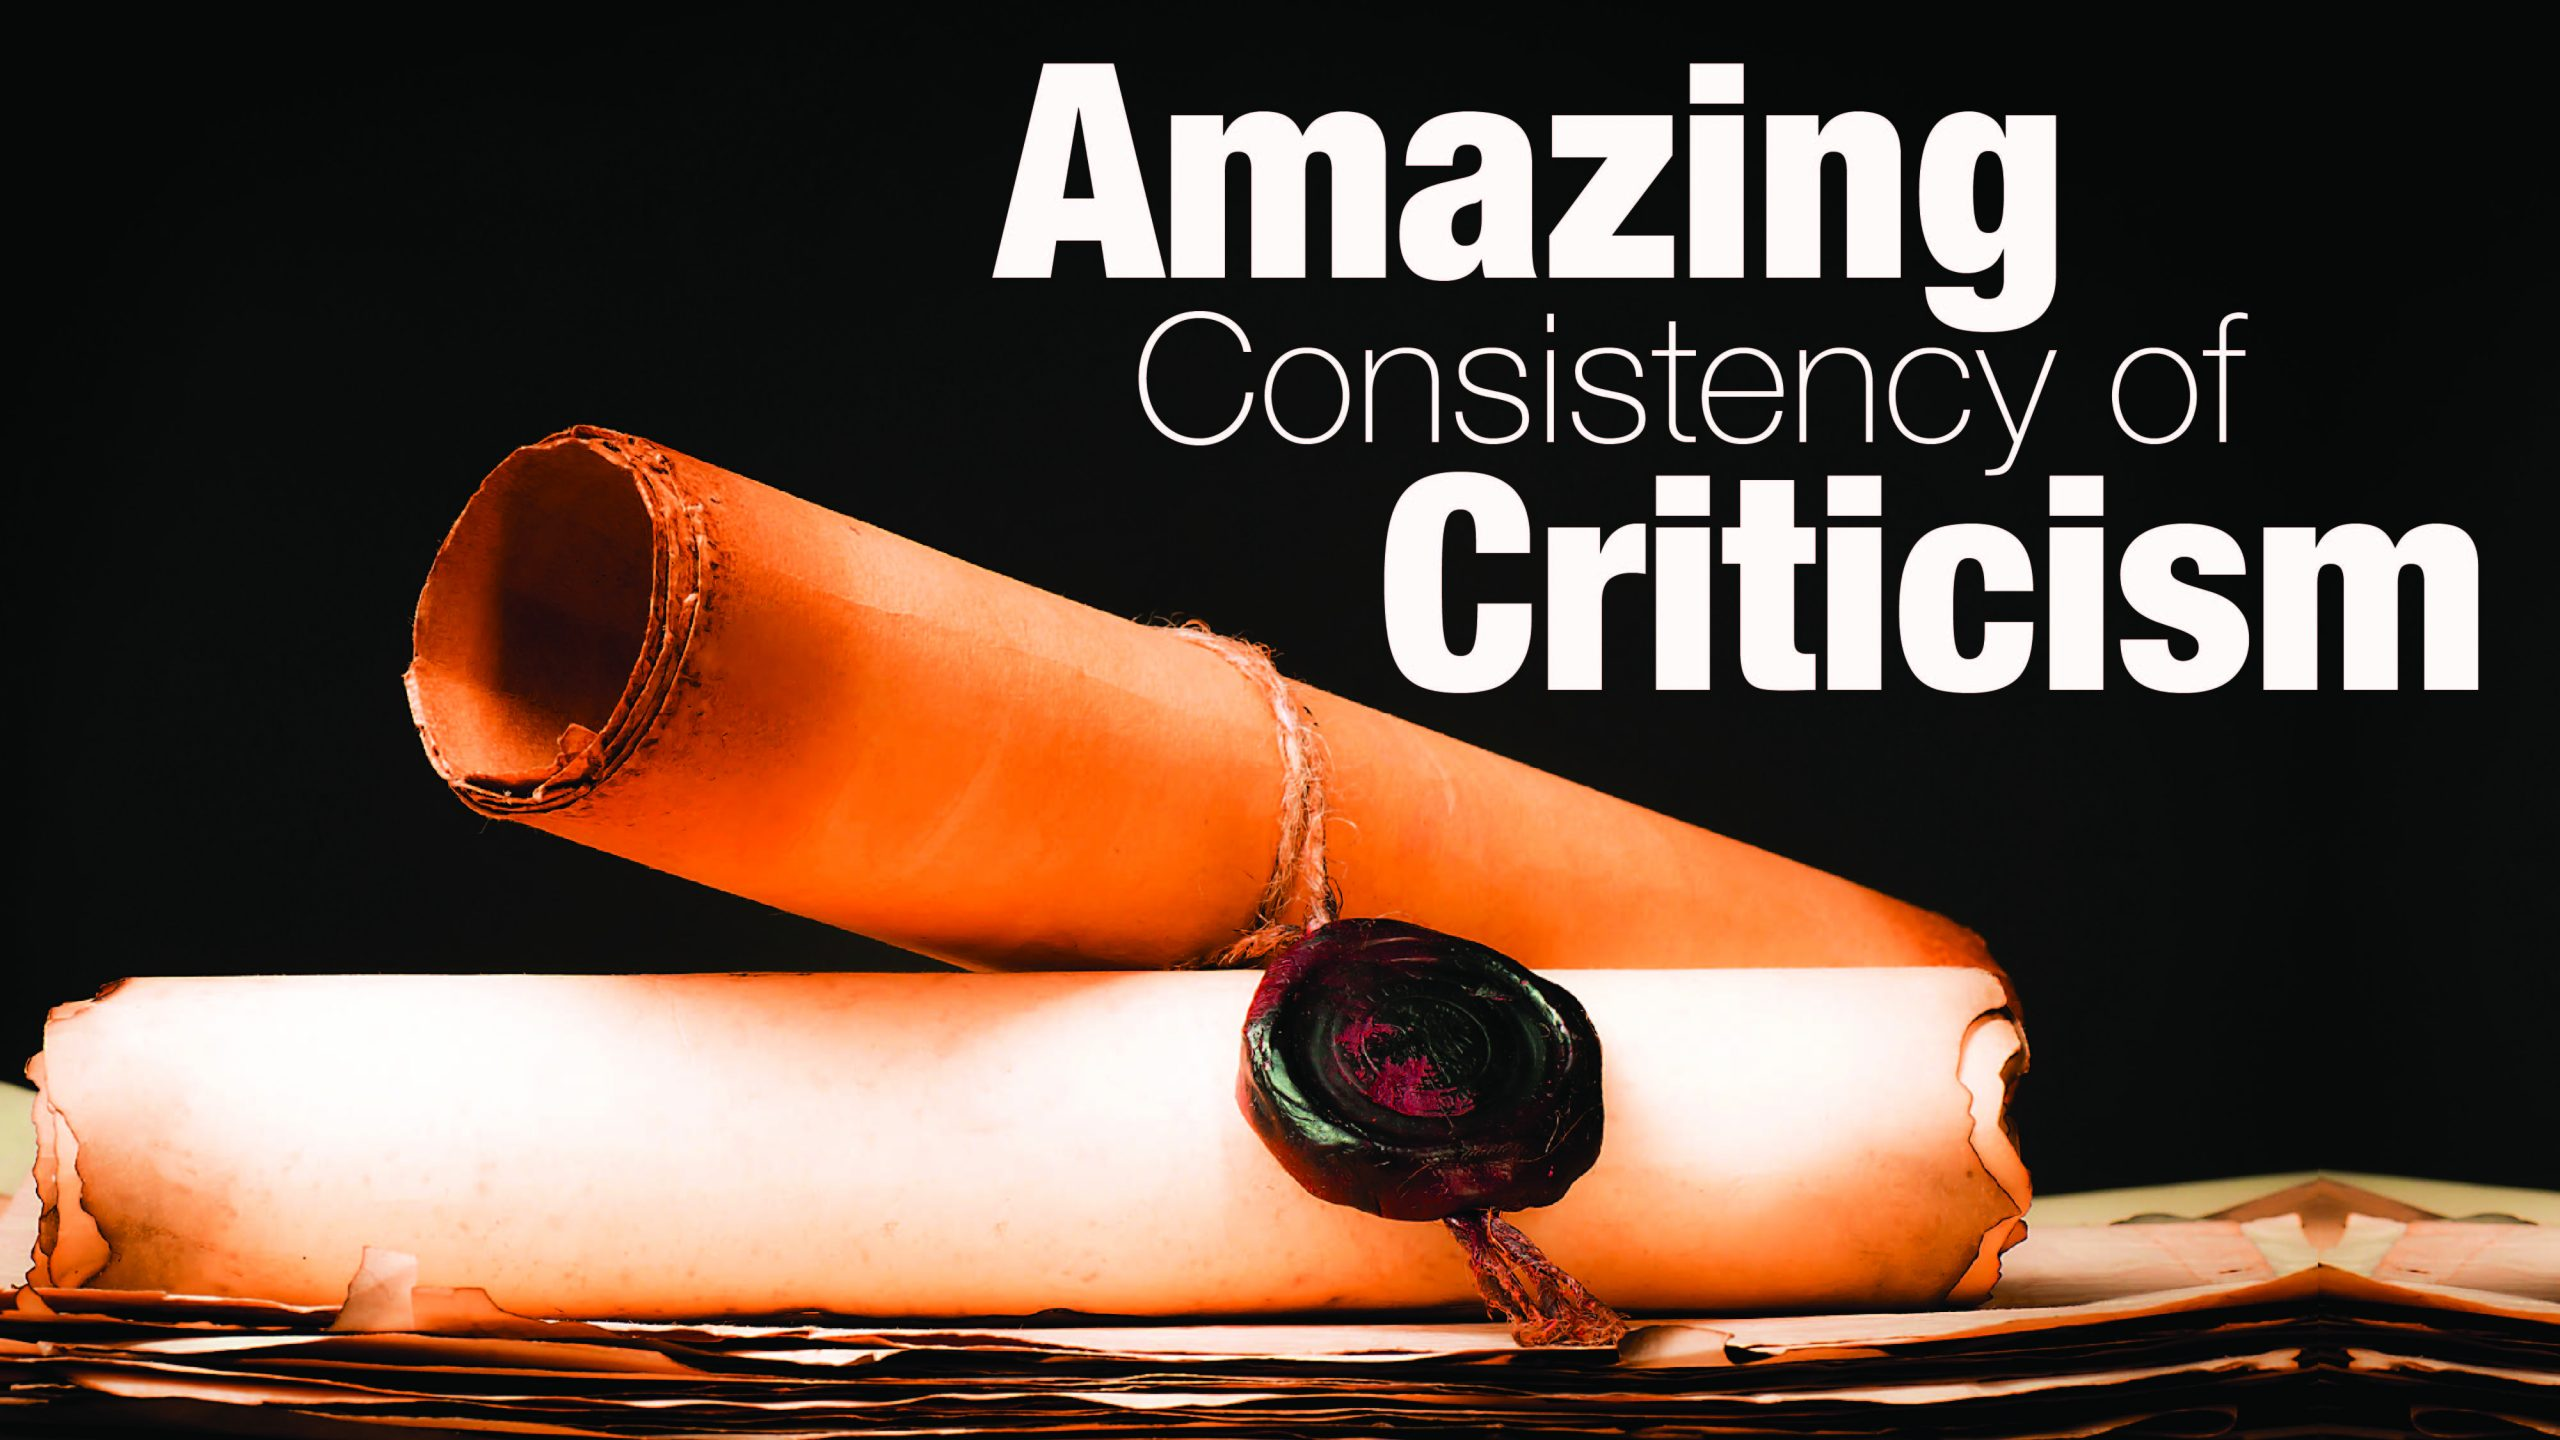 The Bible's Consistency of Criticism